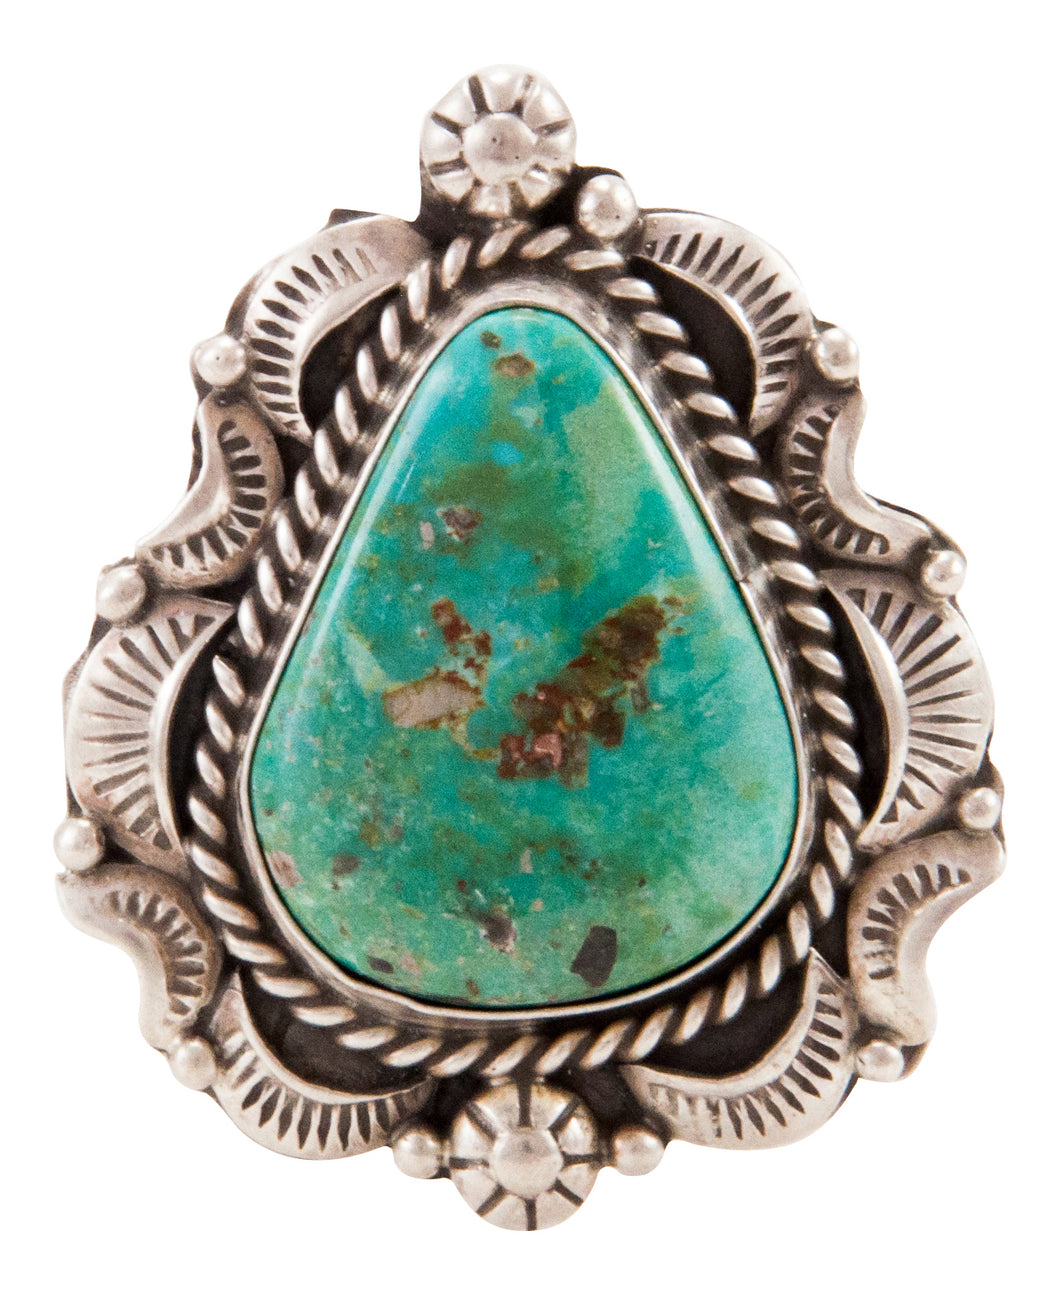 Navajo Native American Candelaria Turquoise Ring Size 9 by B Lee SKU232964